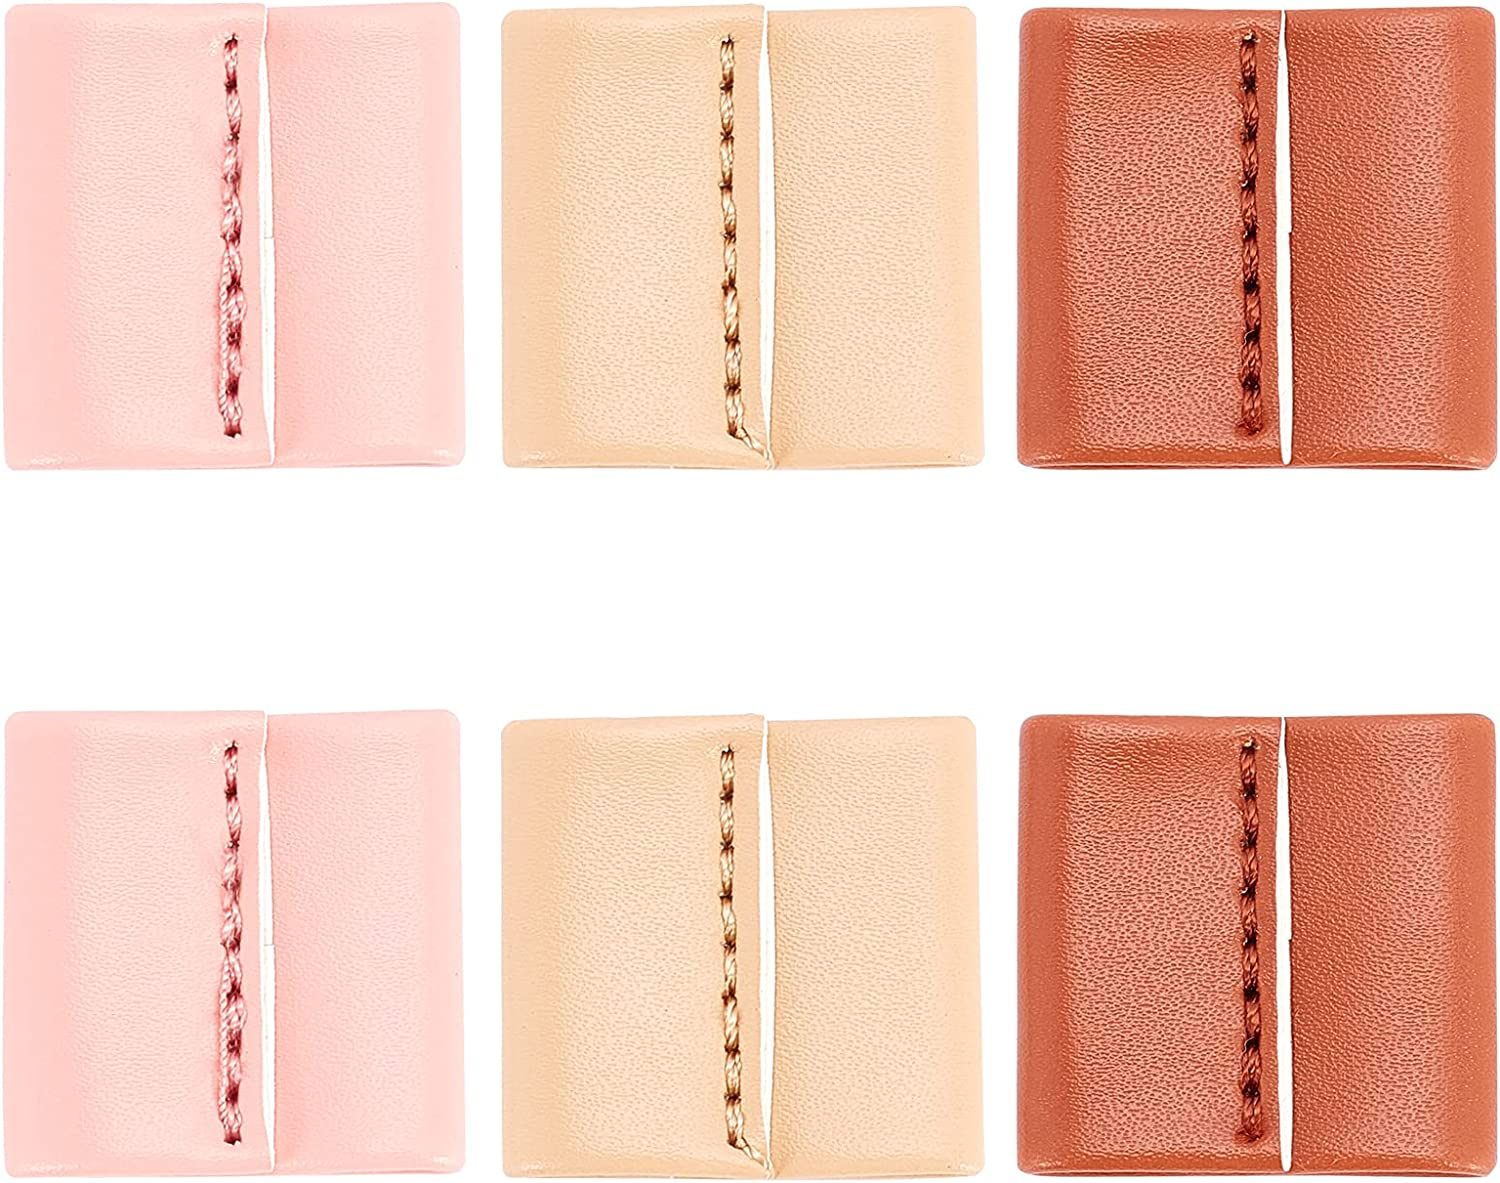 CHGCRAFT 6Pcs free 3 Colors PU Leather Keeper Co Some reservation Slide String